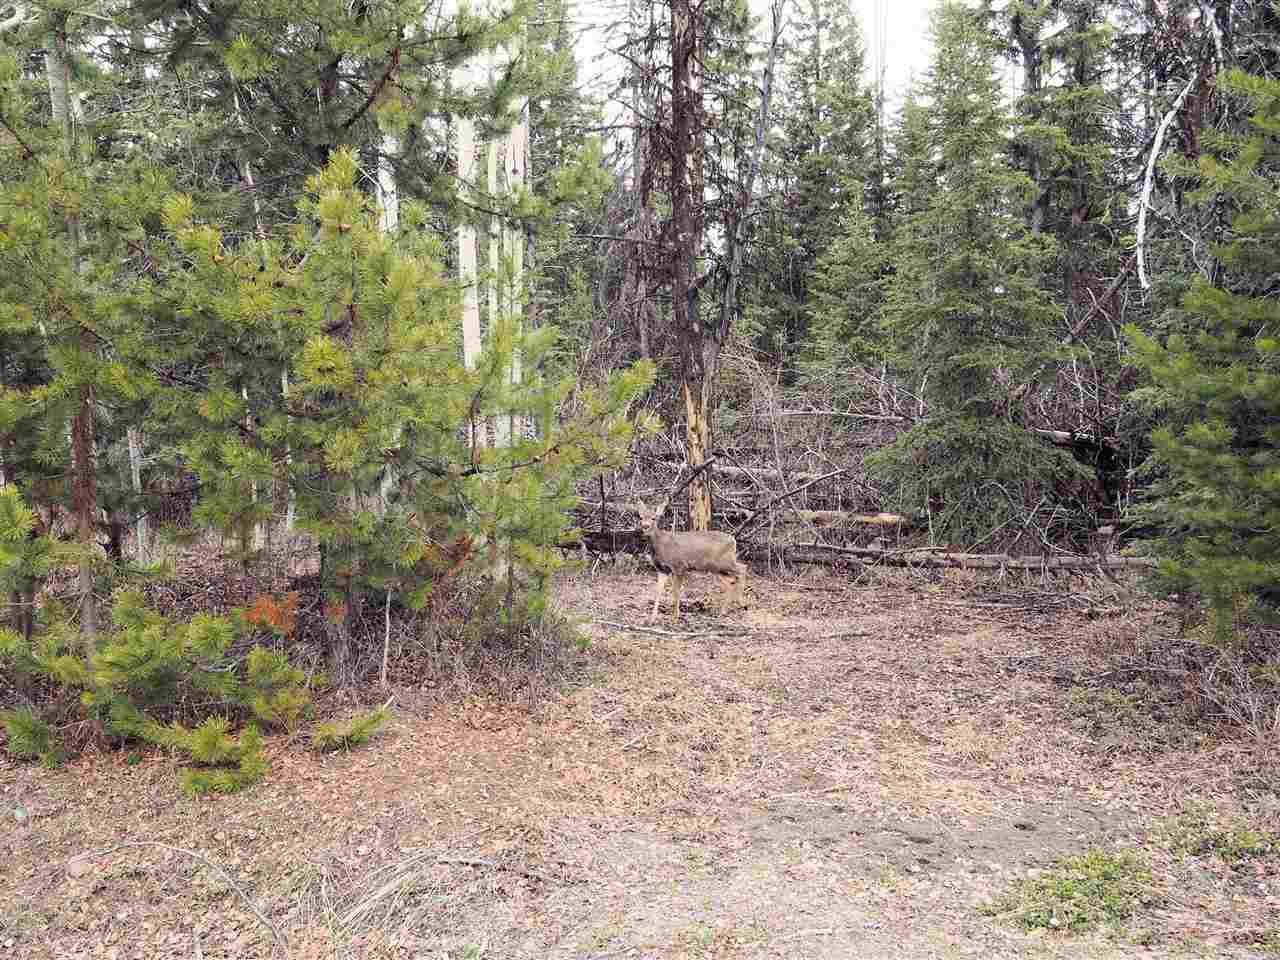 Main Photo: LOT 216 LUDLOM Road: Deka Lake / Sulphurous / Hathaway Lakes Land for sale (100 Mile House (Zone 10))  : MLS®# R2397846